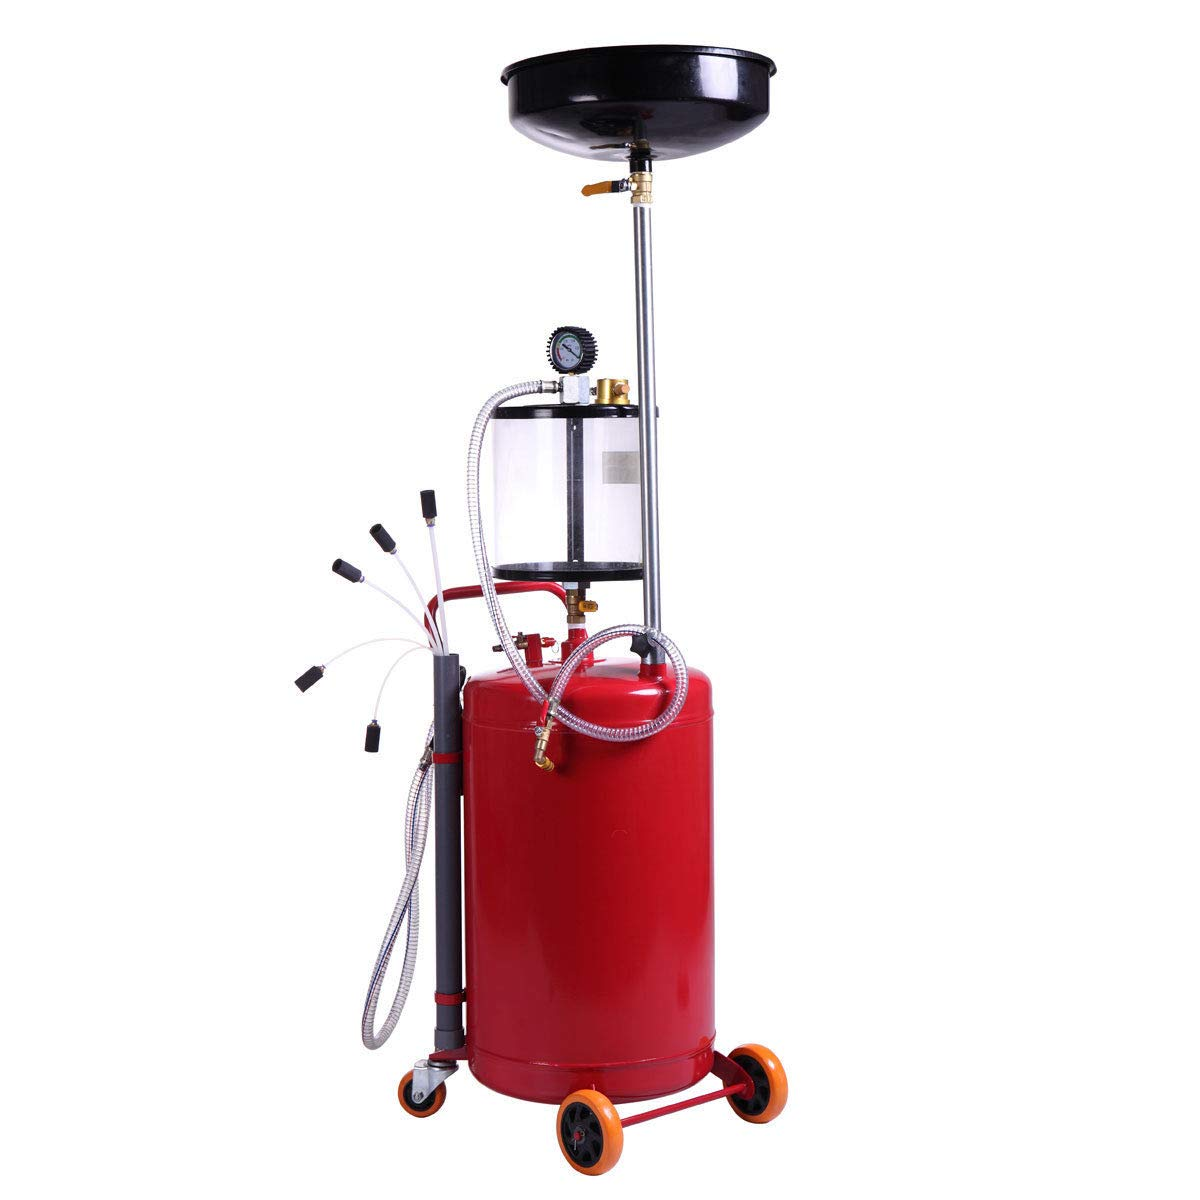 AVGDeals 20 Gallon Waste Oil Drain Tank Air Operate Drainer W/Wheel Hose Red Oil Change   High temperature resistant and corrosion resistant. by AVGDeals